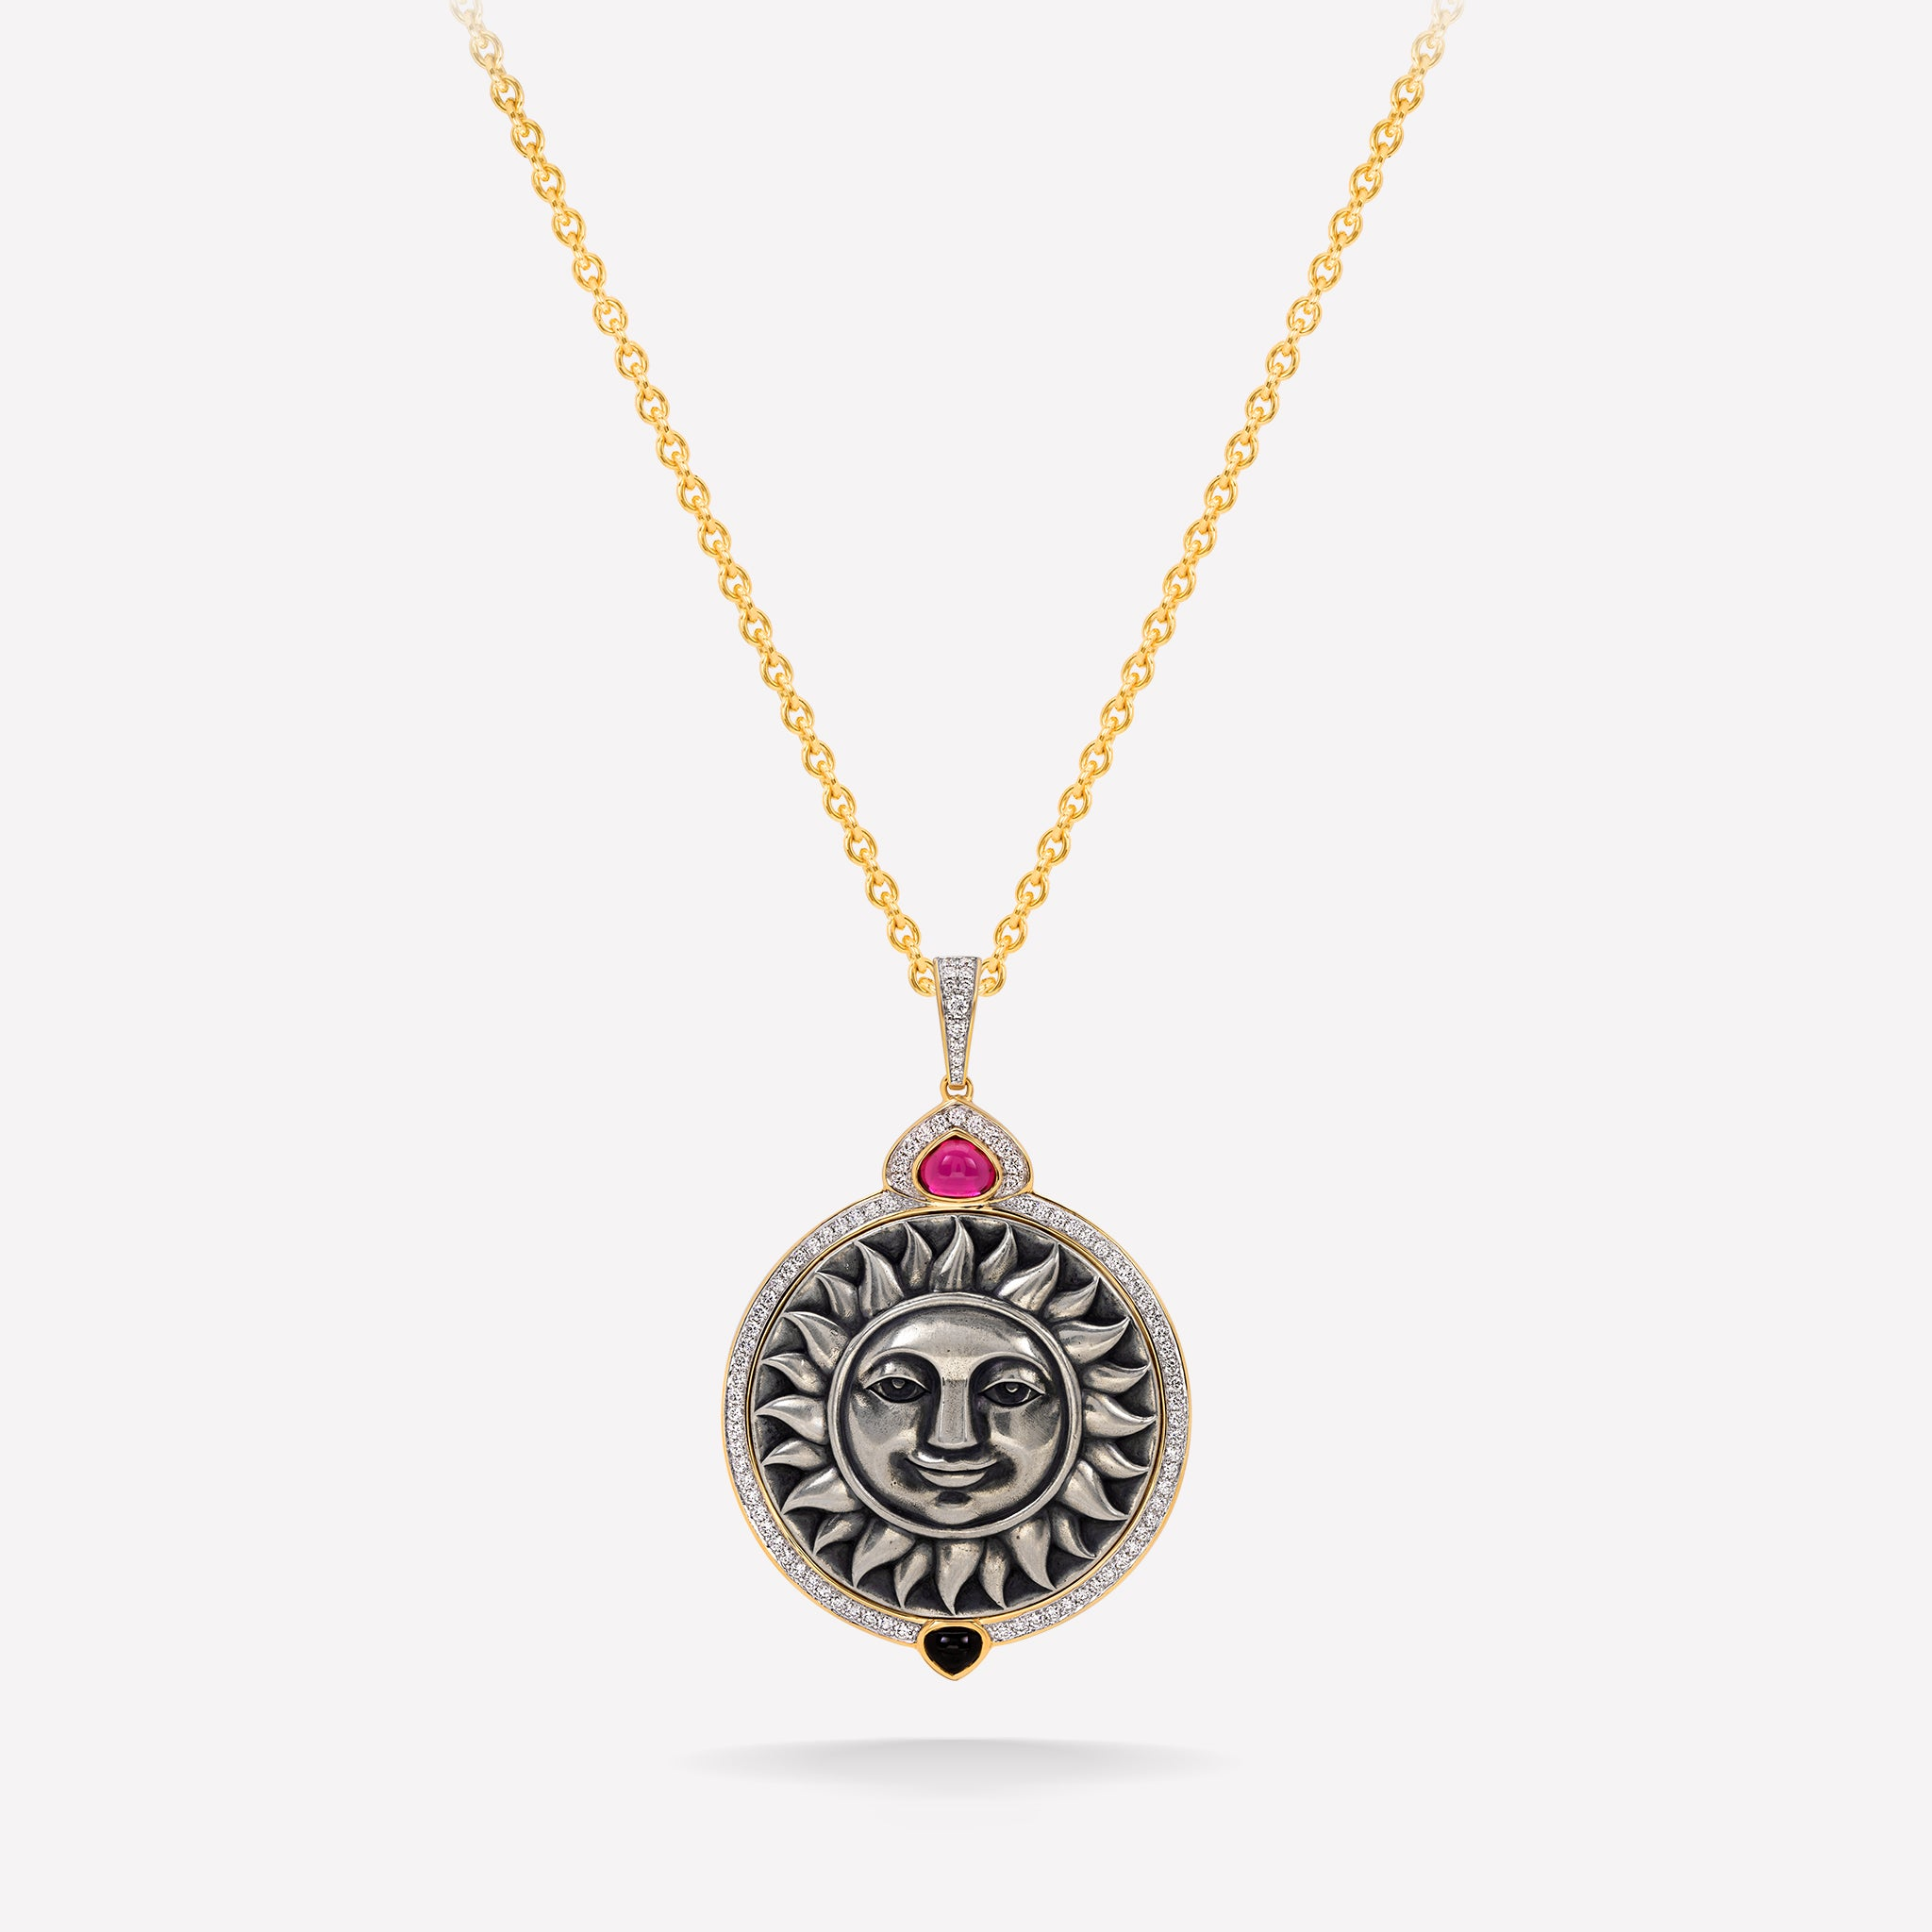 marinab.com, Soleil Limited edition Rubellite Large Pendant